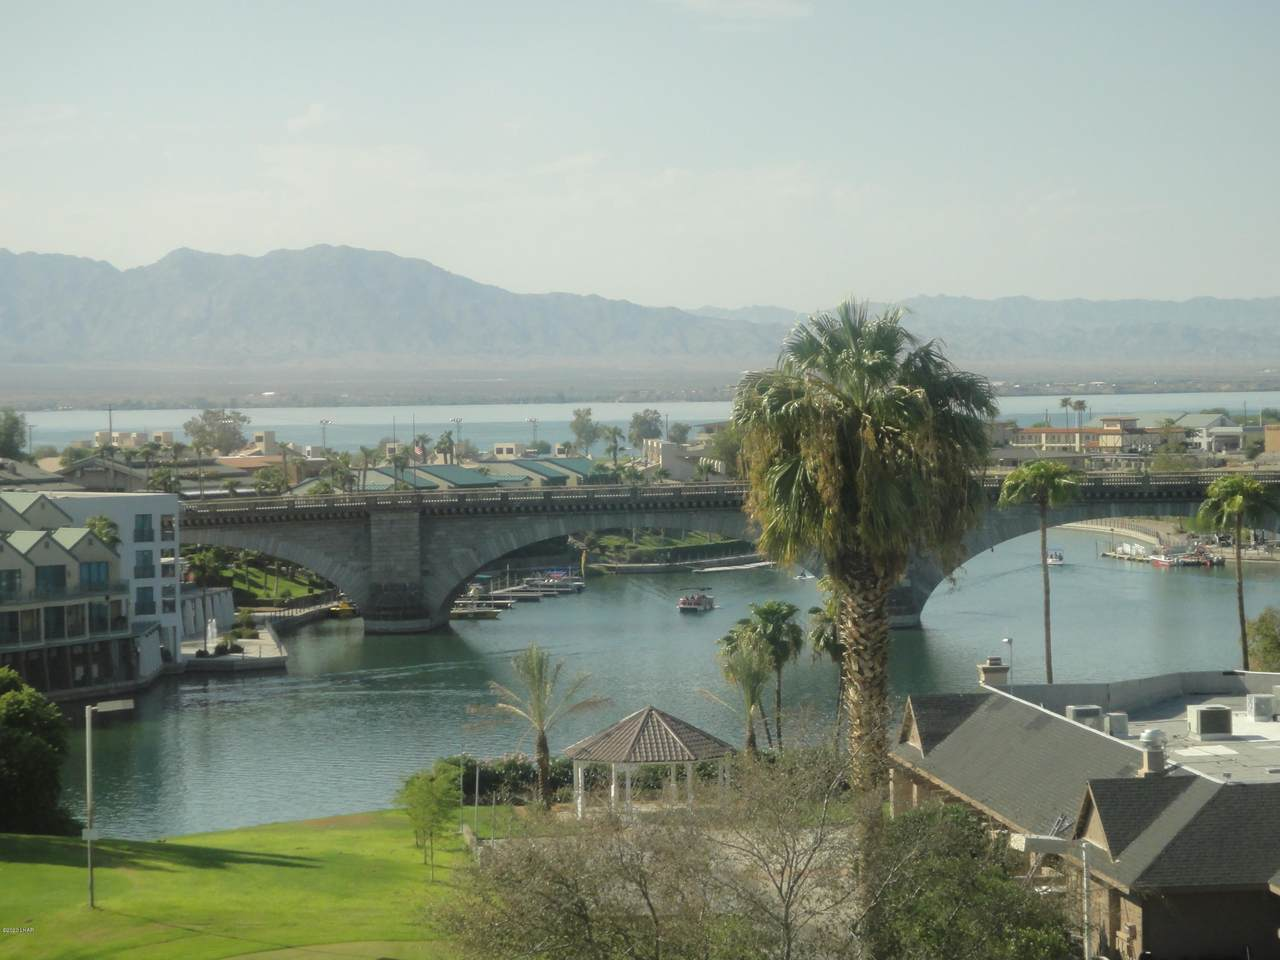 https://bt-photos.global.ssl.fastly.net/lakehavasu/1280_boomver_1_1010386-2.jpg